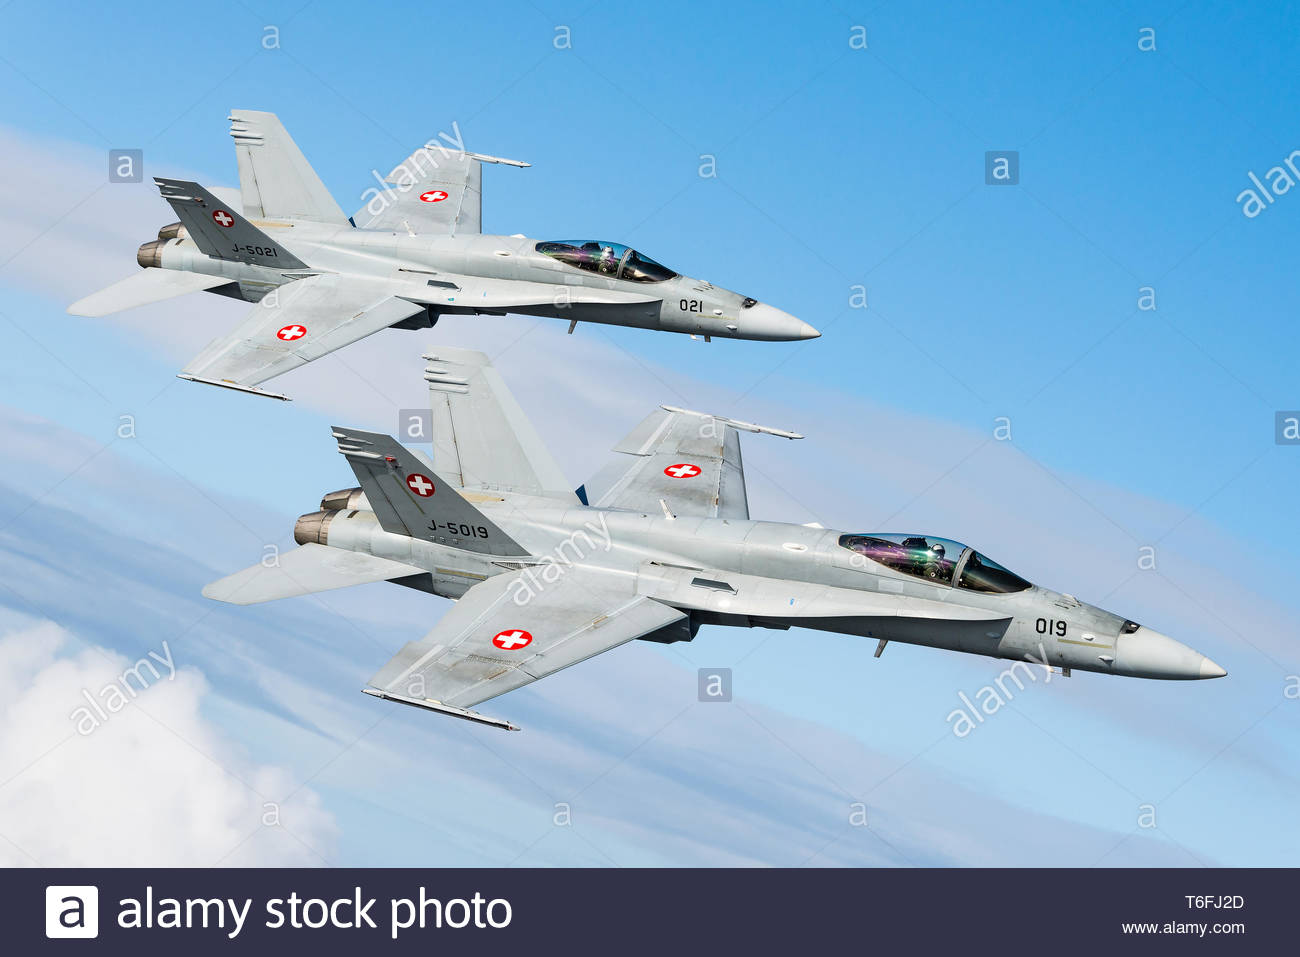 A McDonnell Douglas F/A-18 Hornet twin-engine, supersonic, all-weather, multirole fighter jet of the Swiss Air Force. - Stock Image